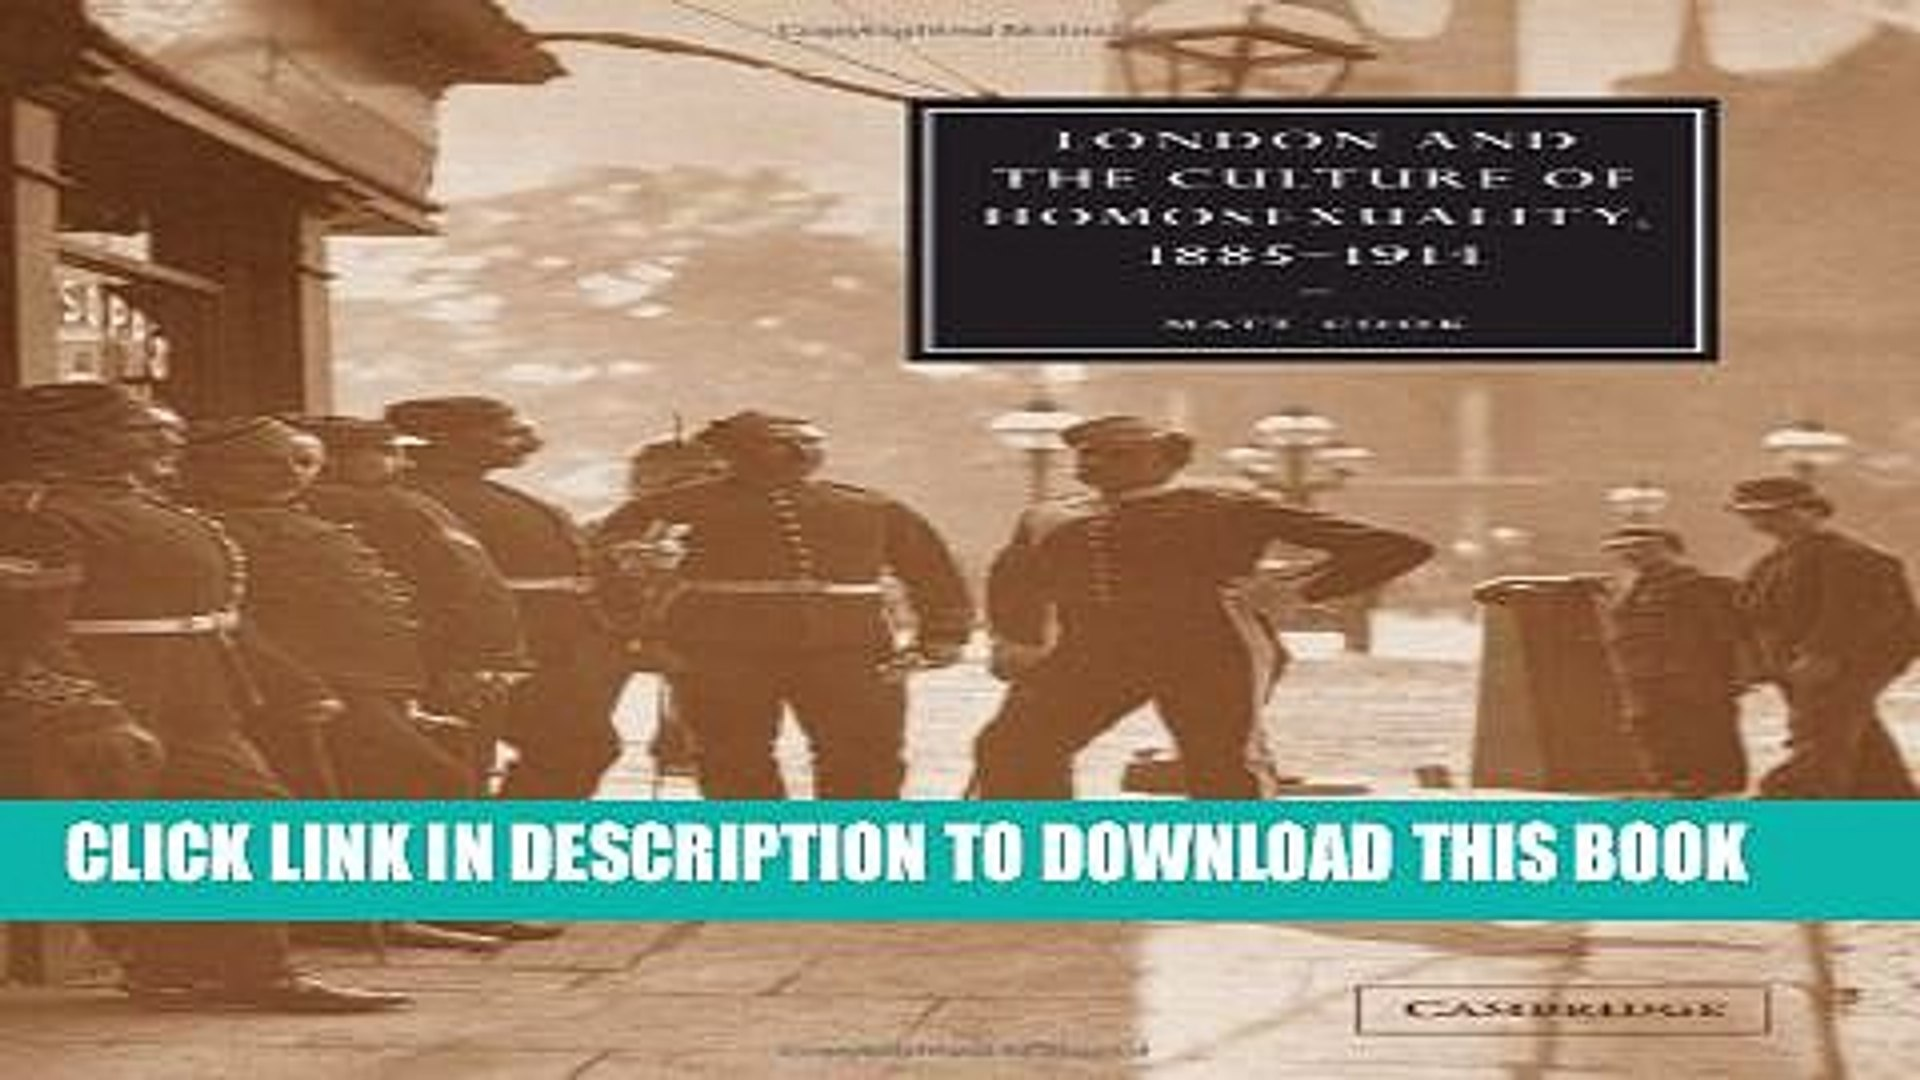 [PDF] London and the Culture of Homosexuality, 1885-1914 Full Collection